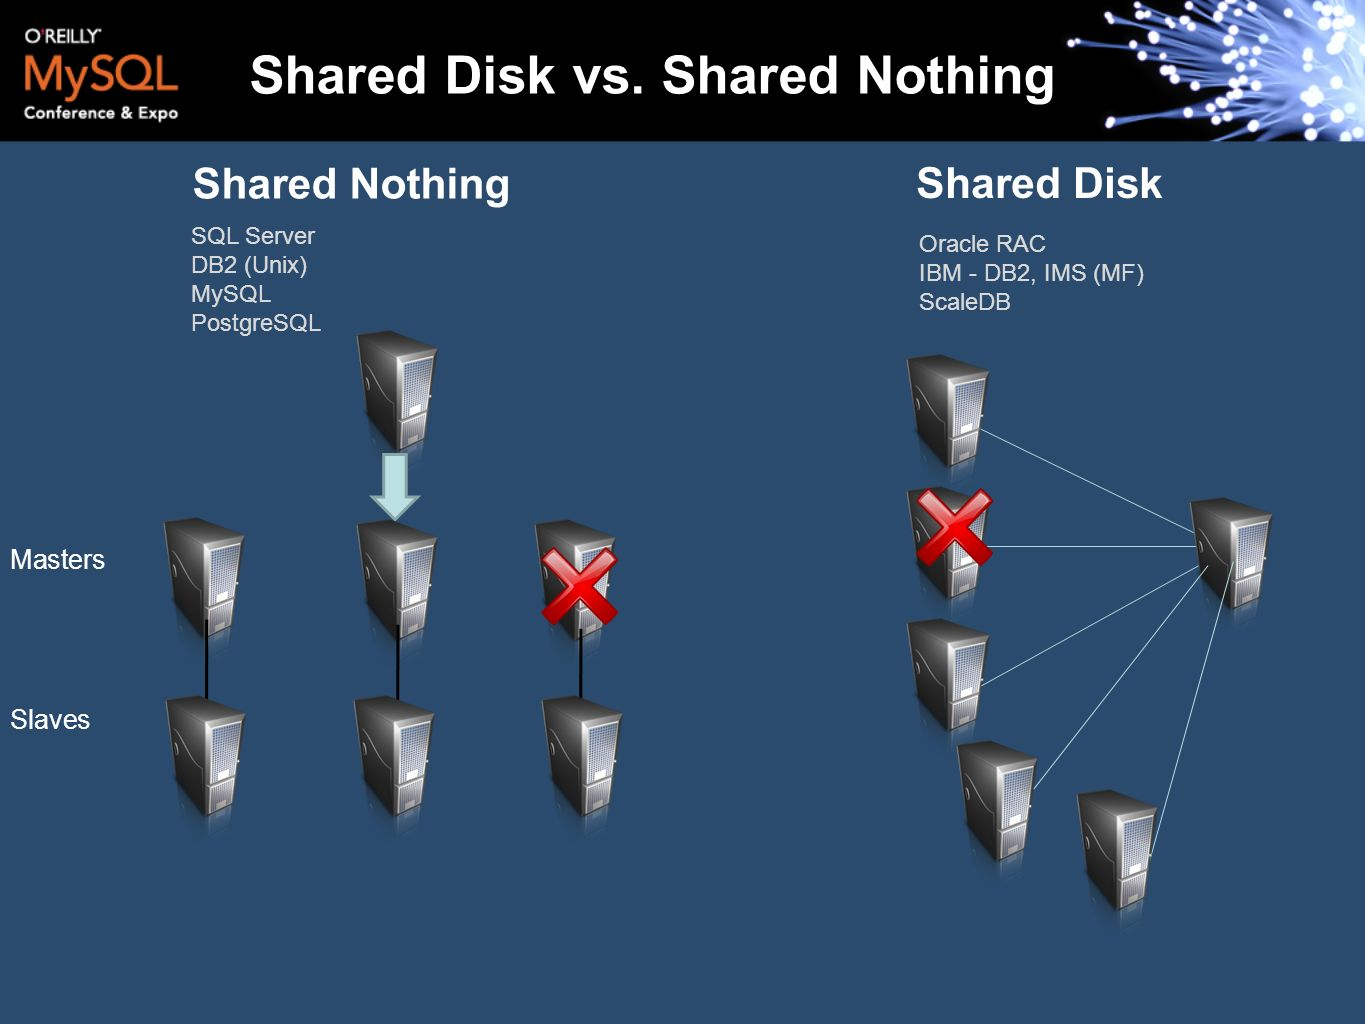 Shared Disk vs. Shared Nothing